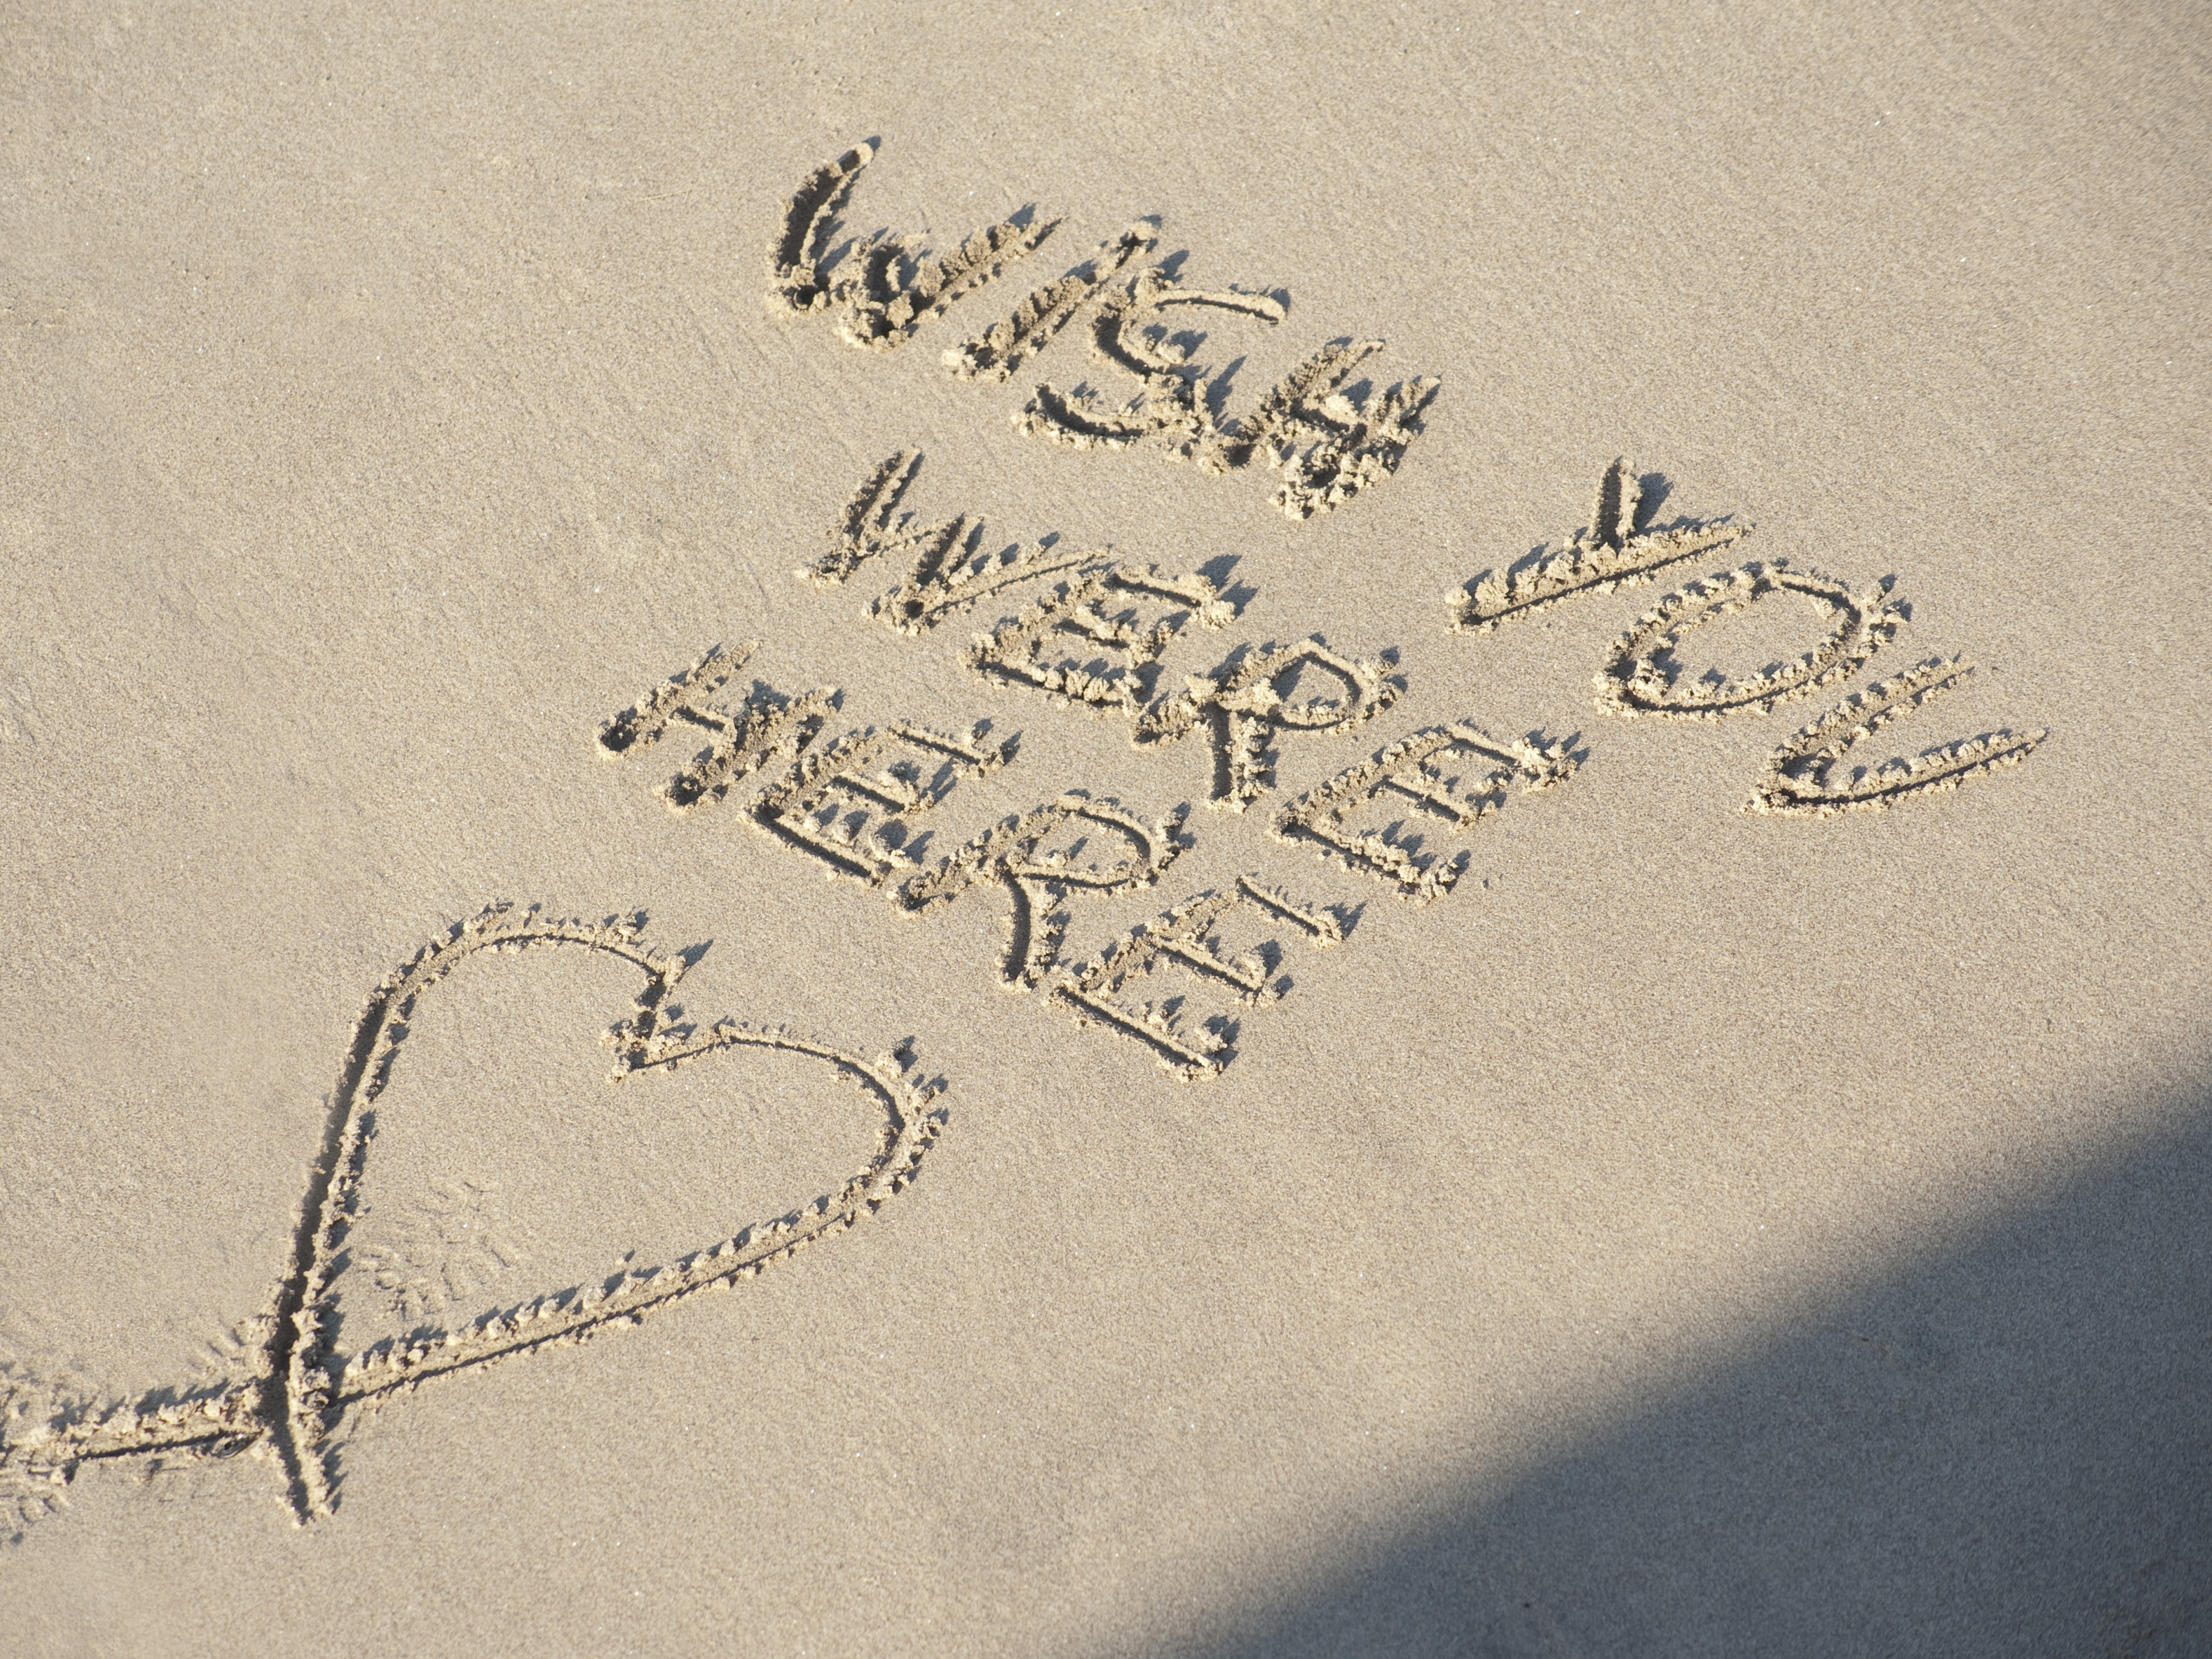 Wish You Were Here Quotes Gorgeous Wish You Were Here On Beach Sand4235  Stockarch Free Stock Photos